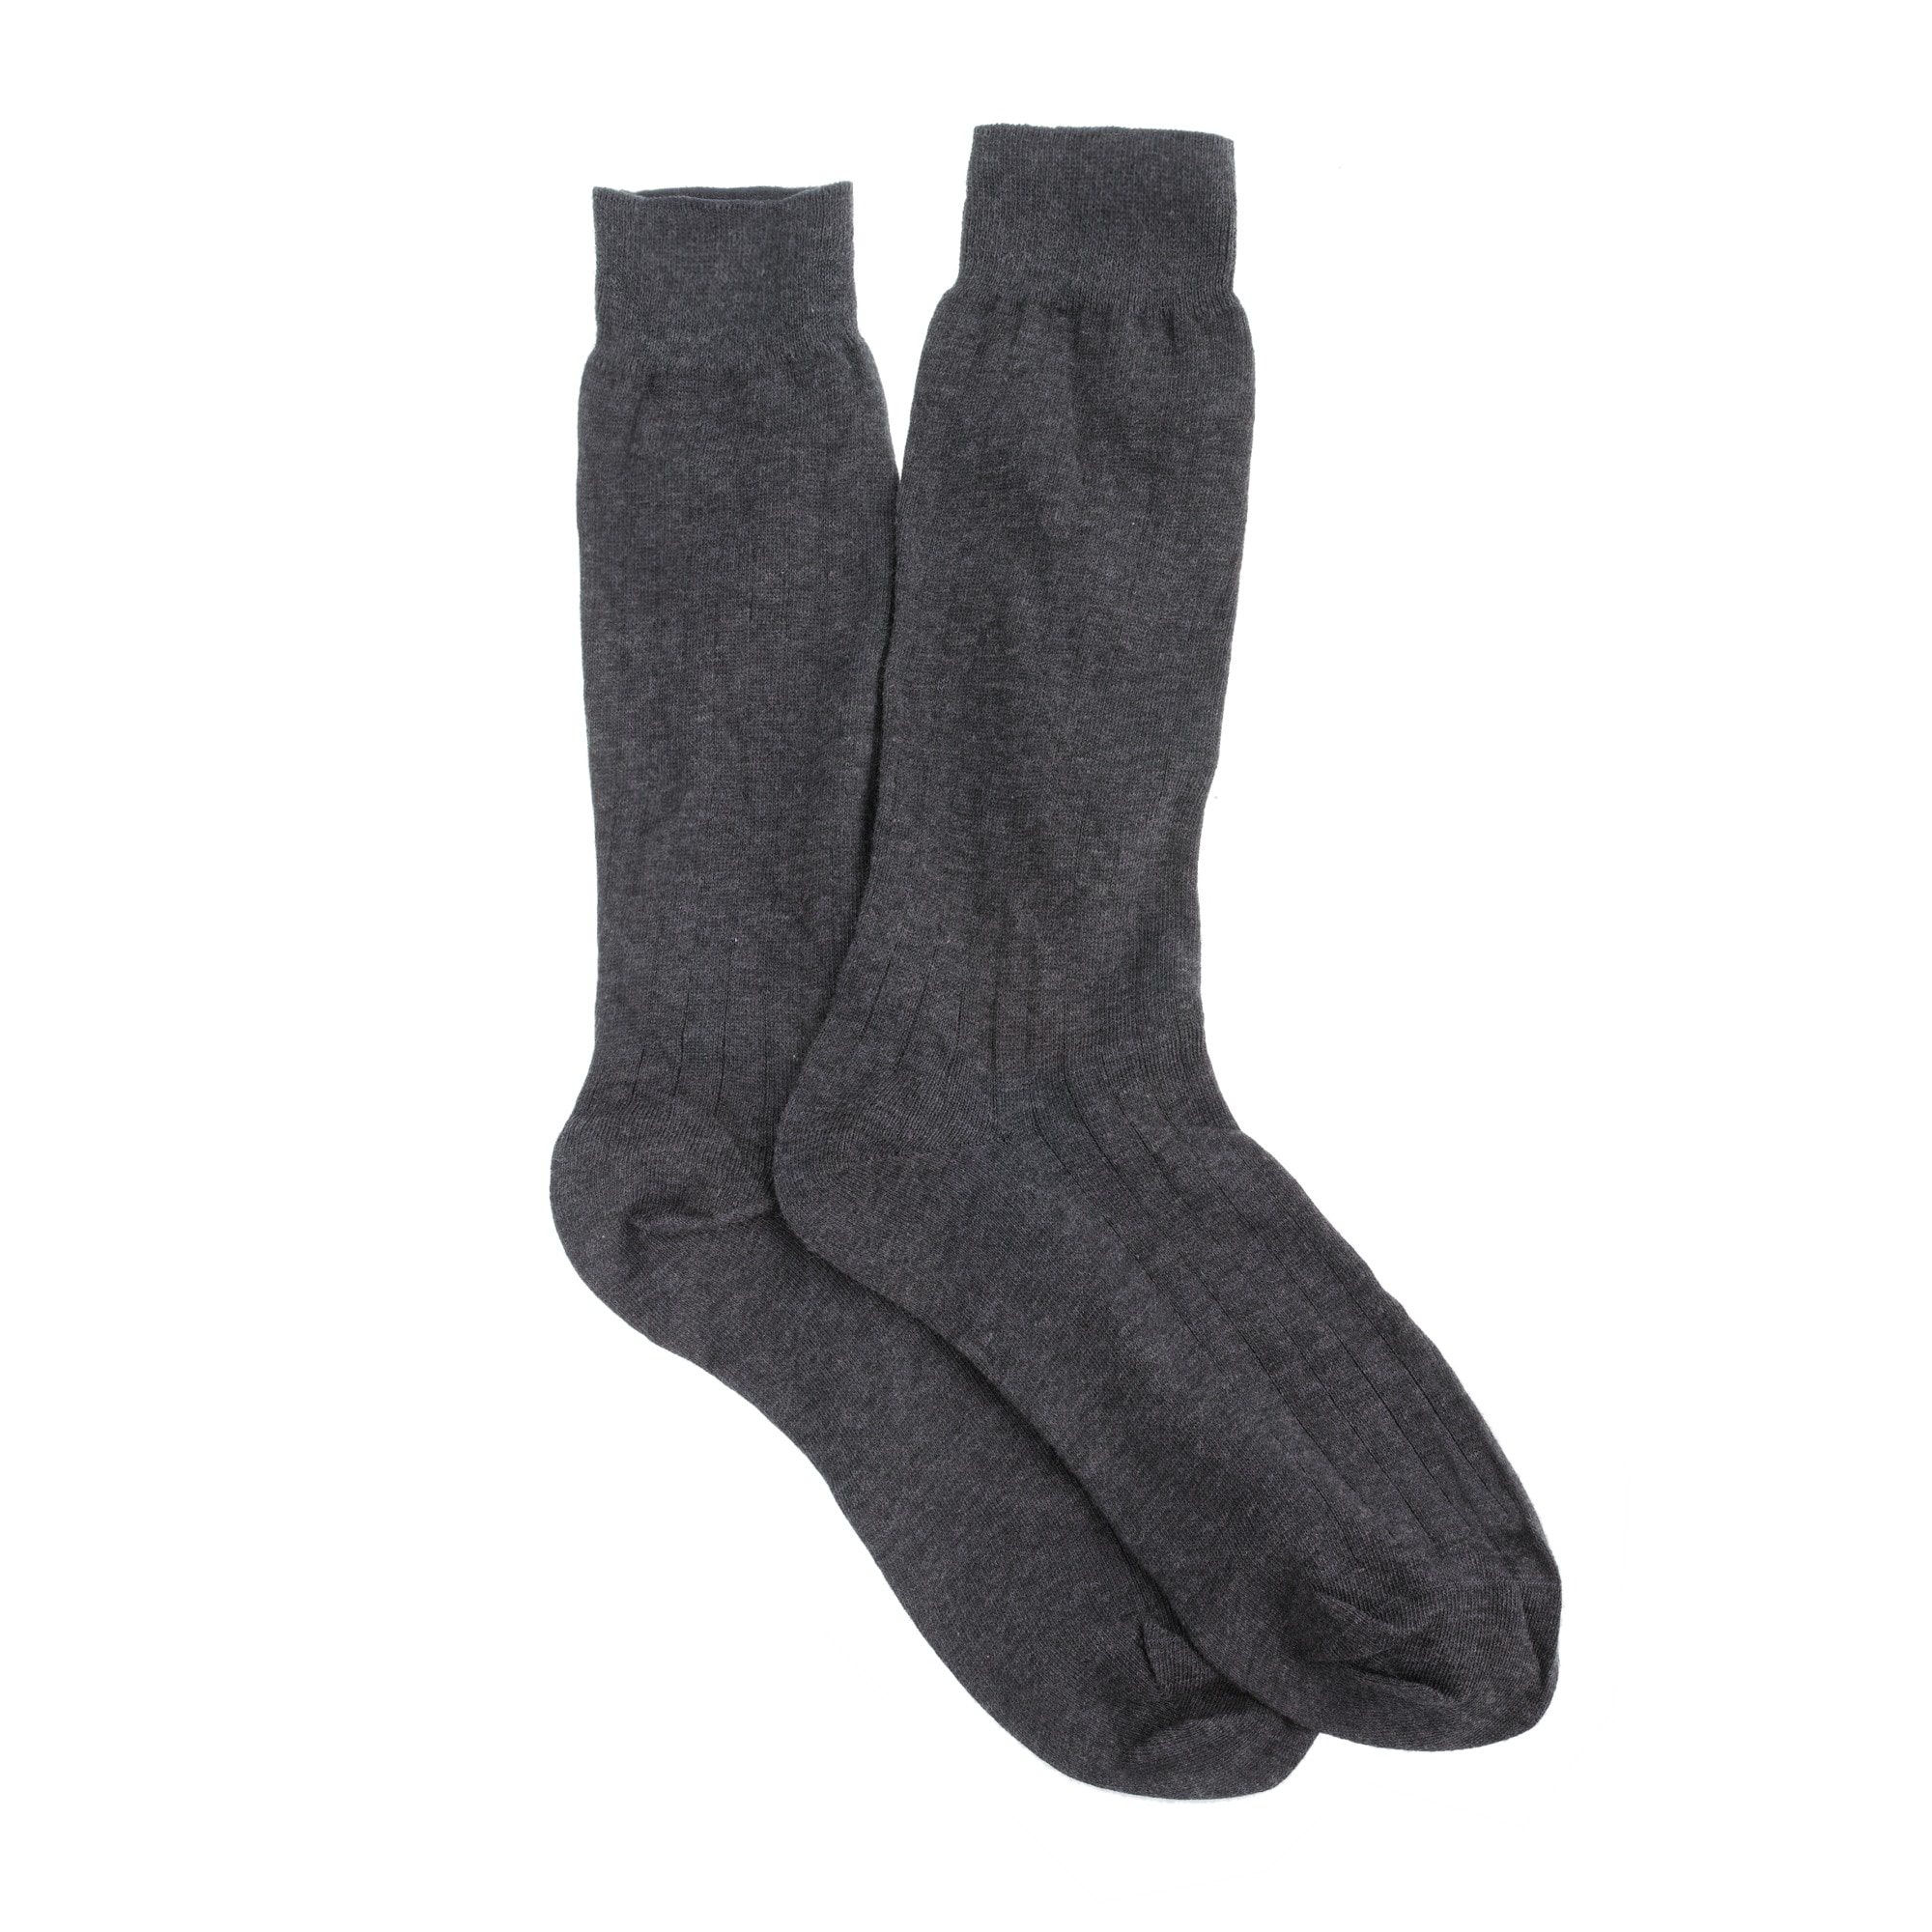 Ribbed cotton dress socks men socks c